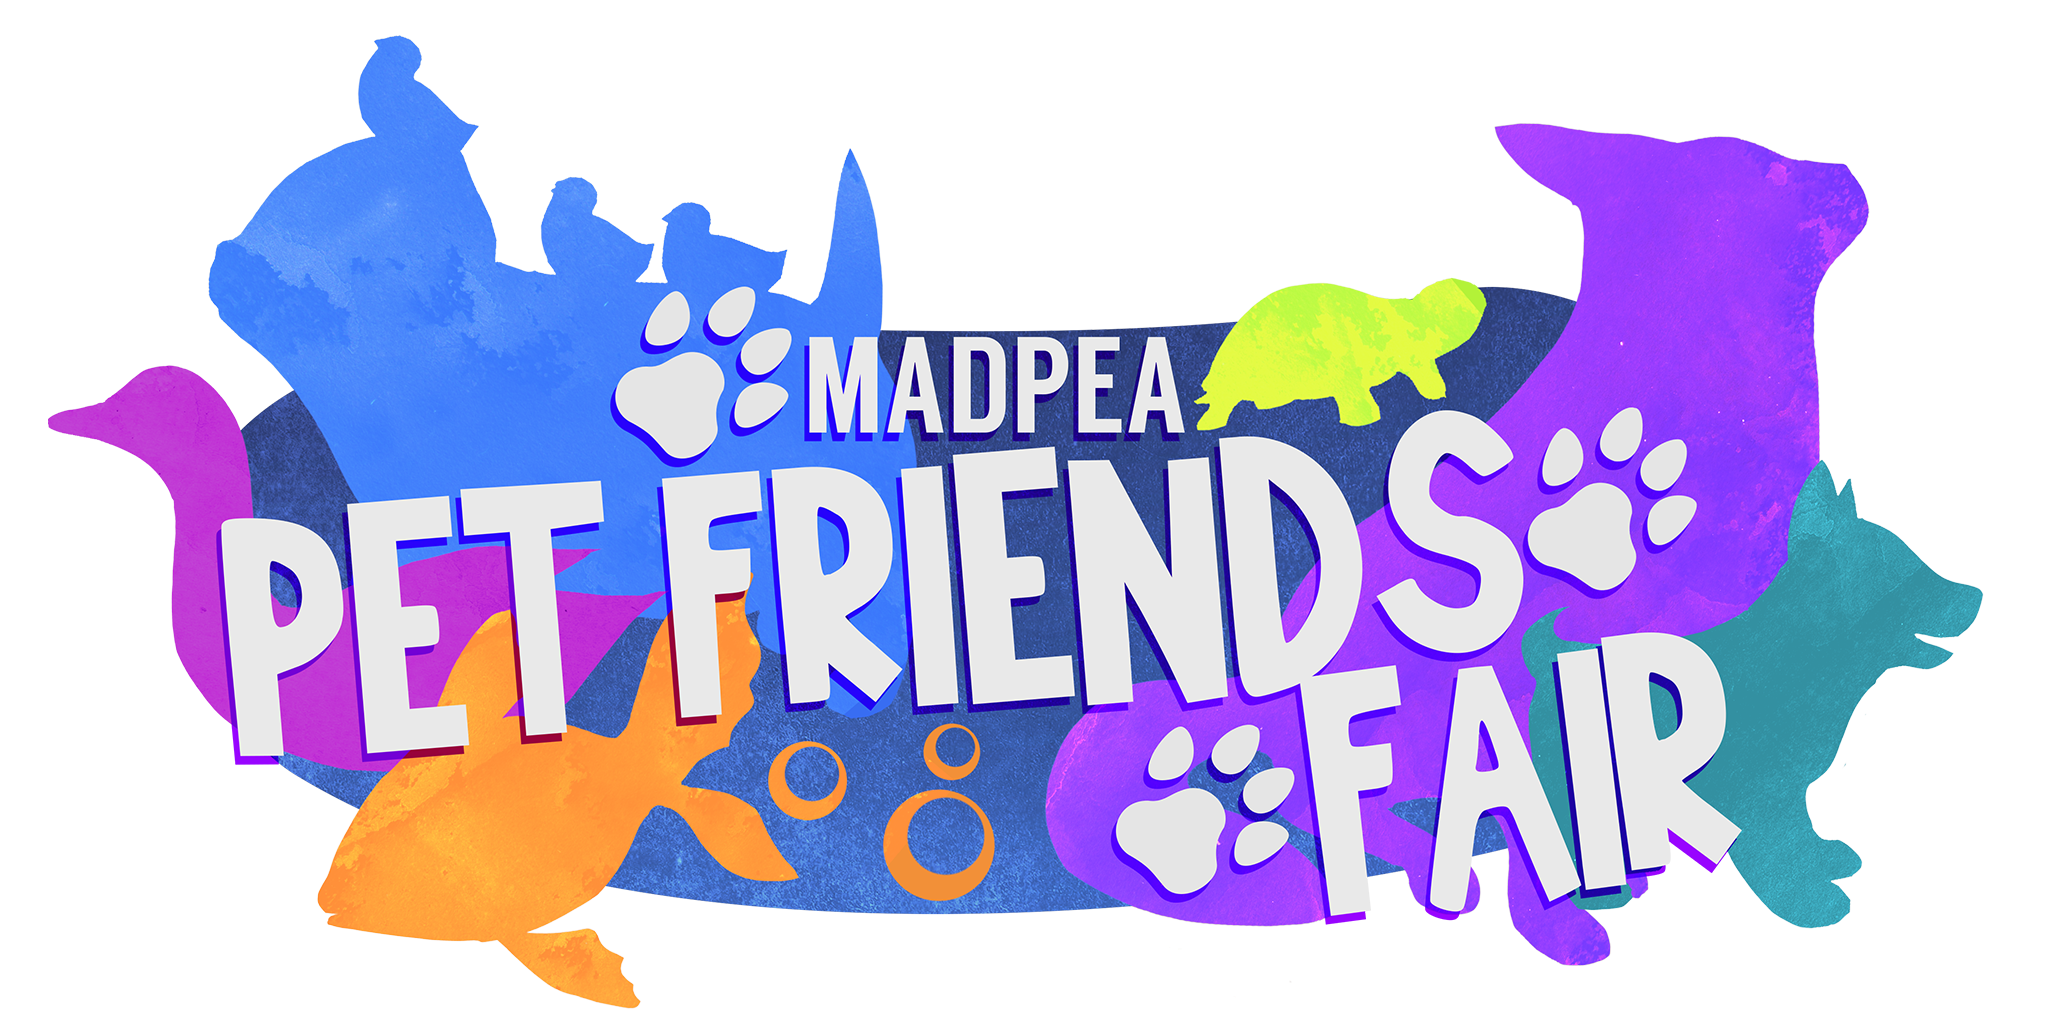 MadPea Pet Friends Fair SPONSORS